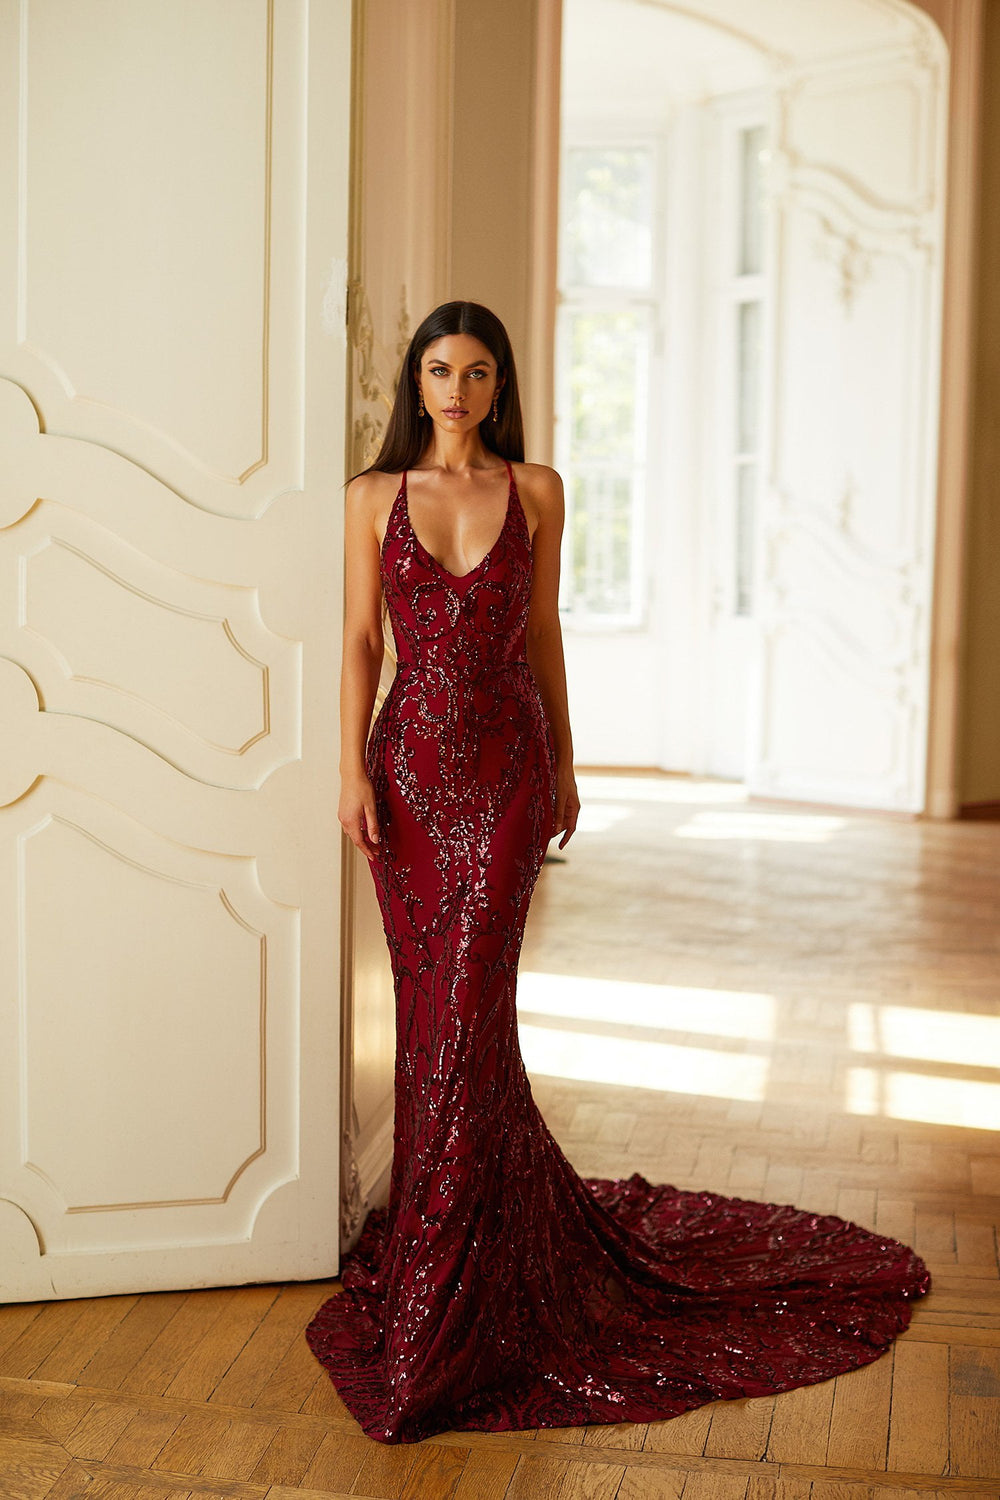 Ramona - Burgundy Sequin Mermaid Gown with Scoop Neck & Lace-Up Back